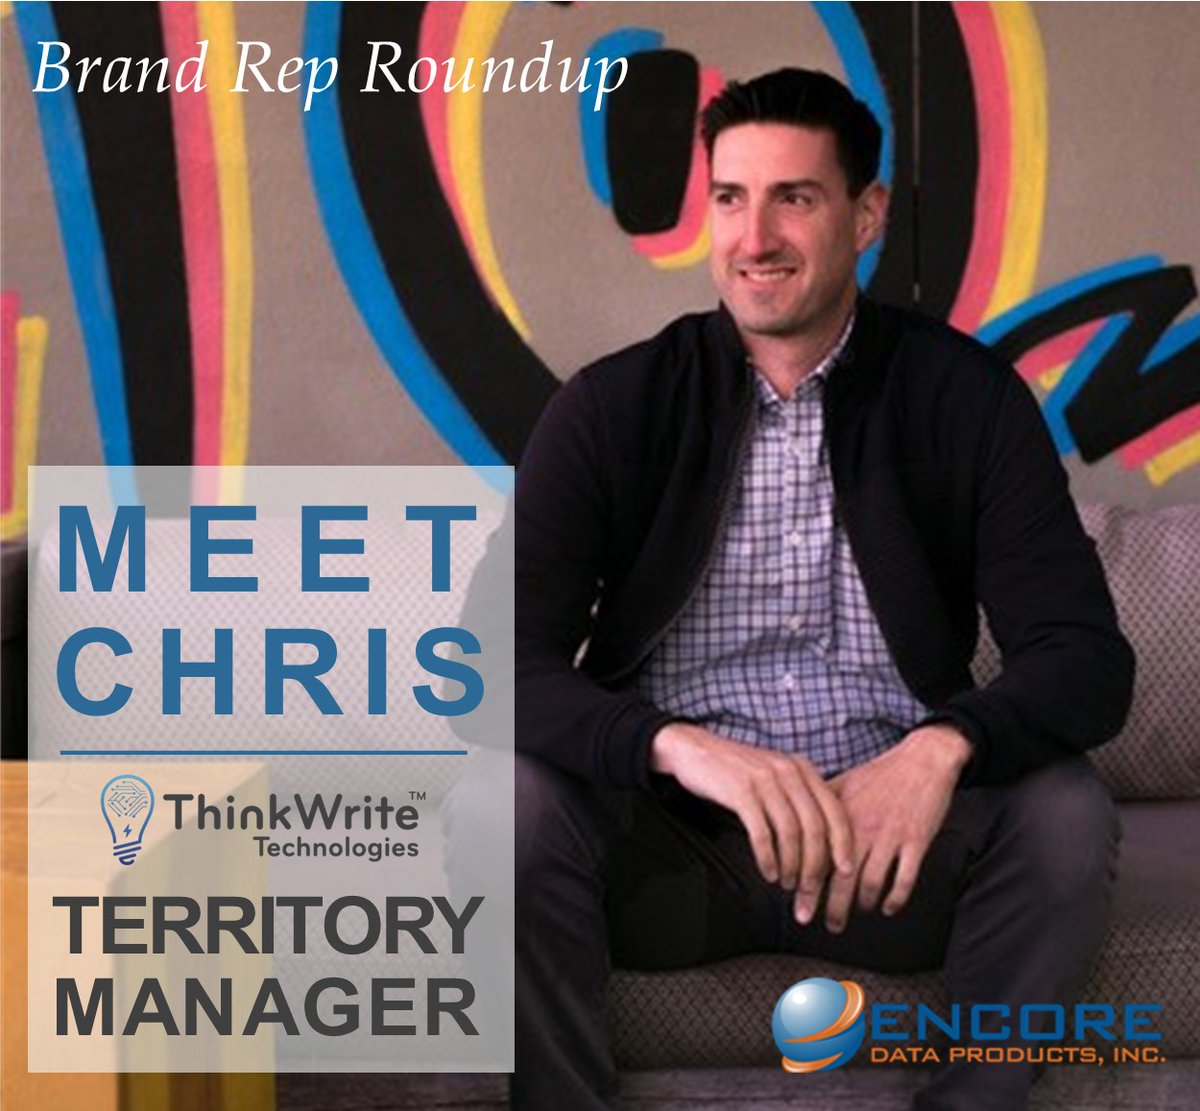 Meet Chris, Territory Manager for ThinkWrite since 2019. Chris enjoys spending time with his two sons, visiting national parks, & exploring the outdoors. He respects the quality, durability & experience put into TW products. Visit https://t.co/8tbqGBV6xr https://t.co/TyUMC8f5k8